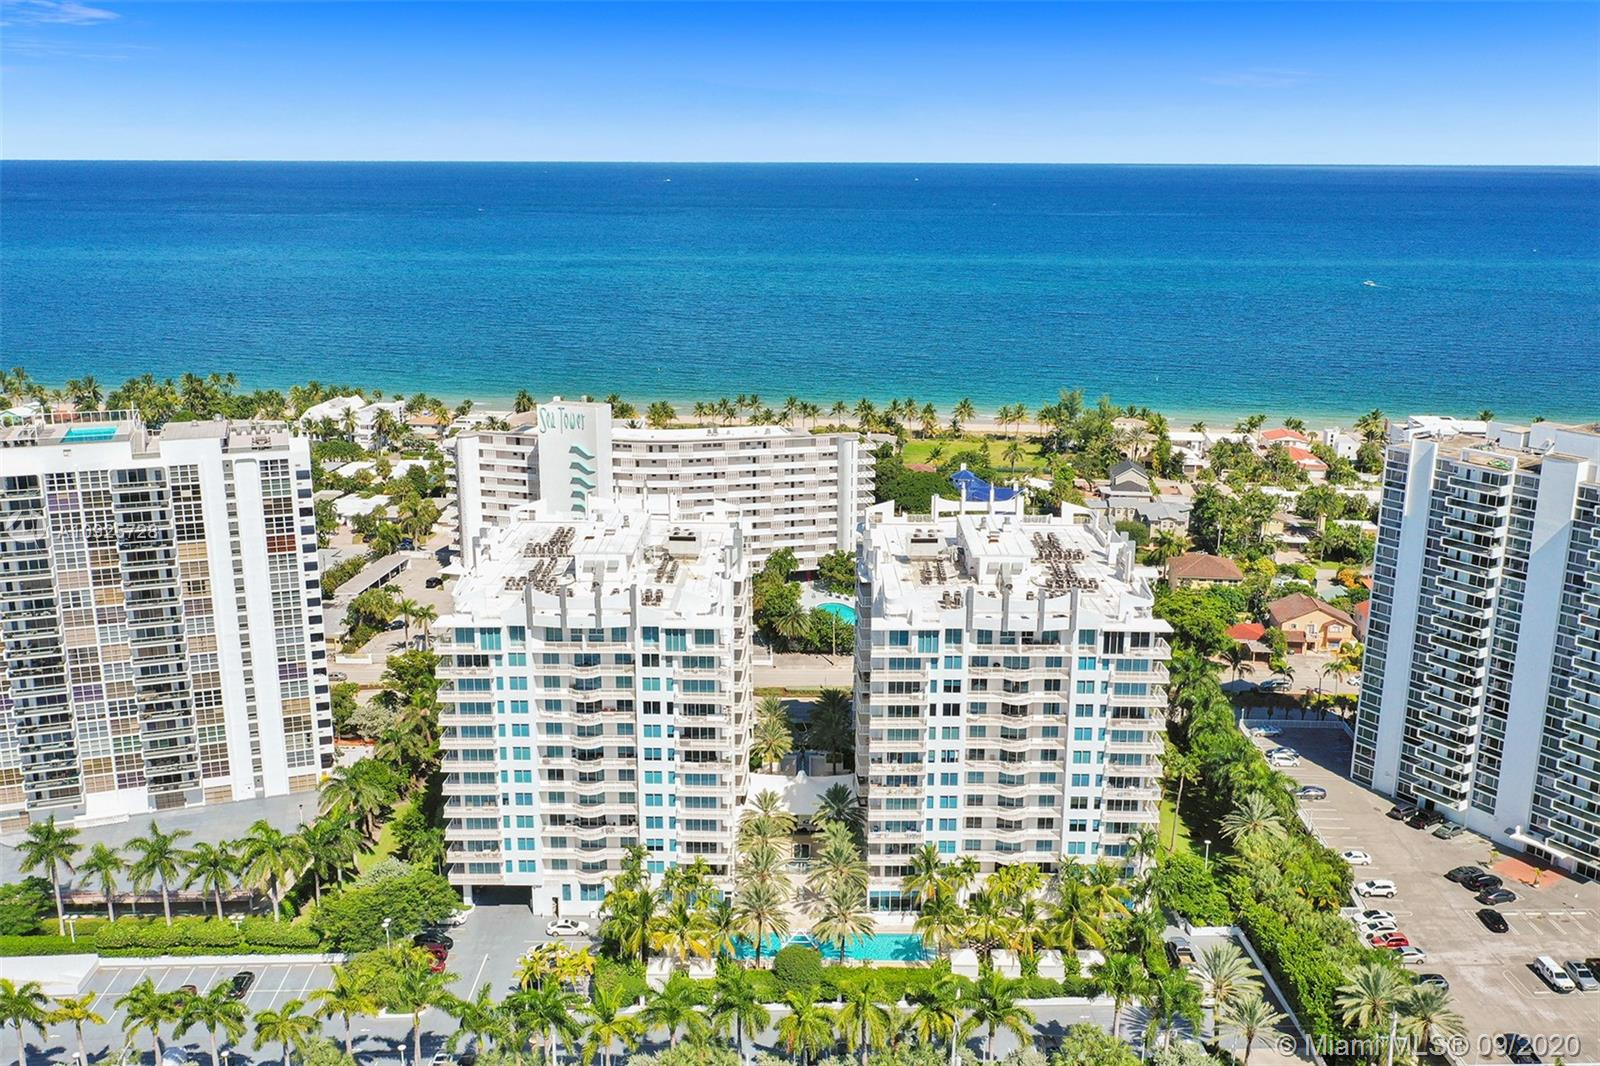 *Special Financing Available* Beautiful Fort Lauderdale Condo for Sale! The Sapphire is a contemporary building with 5- Star Luxury Resort Living amenities. This 2 Bedroom and 2 Full Baths + Den on 1274 sqft features intercostal and ocean views. 24x24 porcelain floors in the living room and carpet in bedrooms. Split floor plan. All rooms have access to the balcony. Open kitchen w/Smart SS appliances, granite counters. Washer/Dryer in the unit. 5-Star Amenities incl: 24 Hr Security, Resort Style Pool, Fitness Center, Spa, Business Ctr, Private Dog Park * Ownership incl membership to elite Club Harbor Beach at the Marriott Resort w/golf & tennis privileges... Call the listing agent for more info!.... Virtual Tour Available!